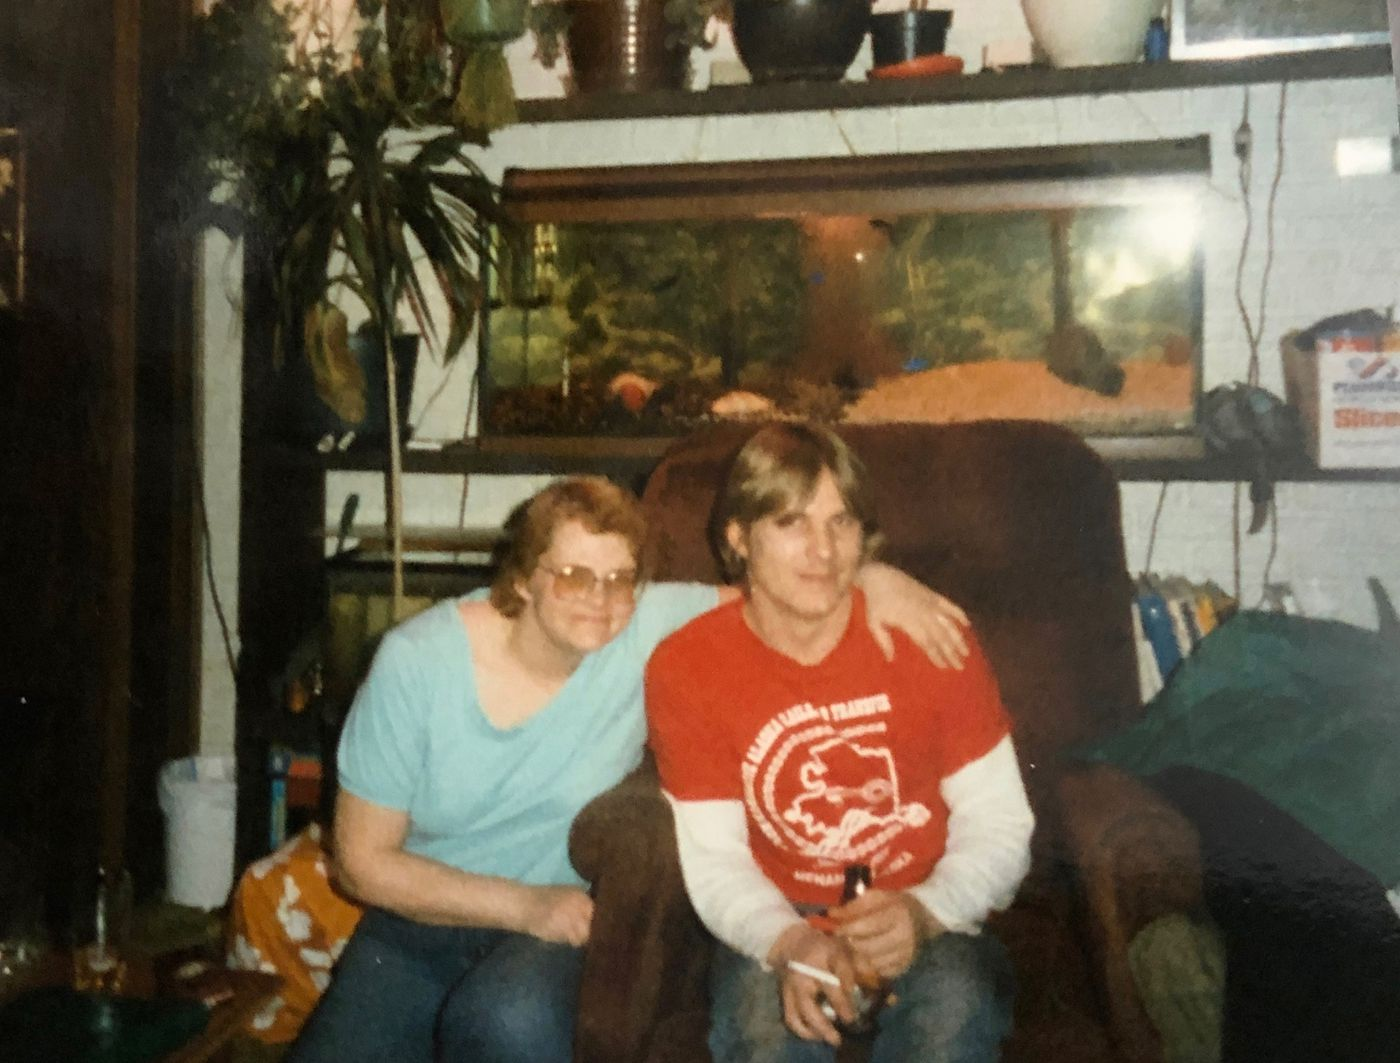 Beth Blake and Dennis Mouser in the mid-1980s. (Photo courtesy of Sherri Stewart)